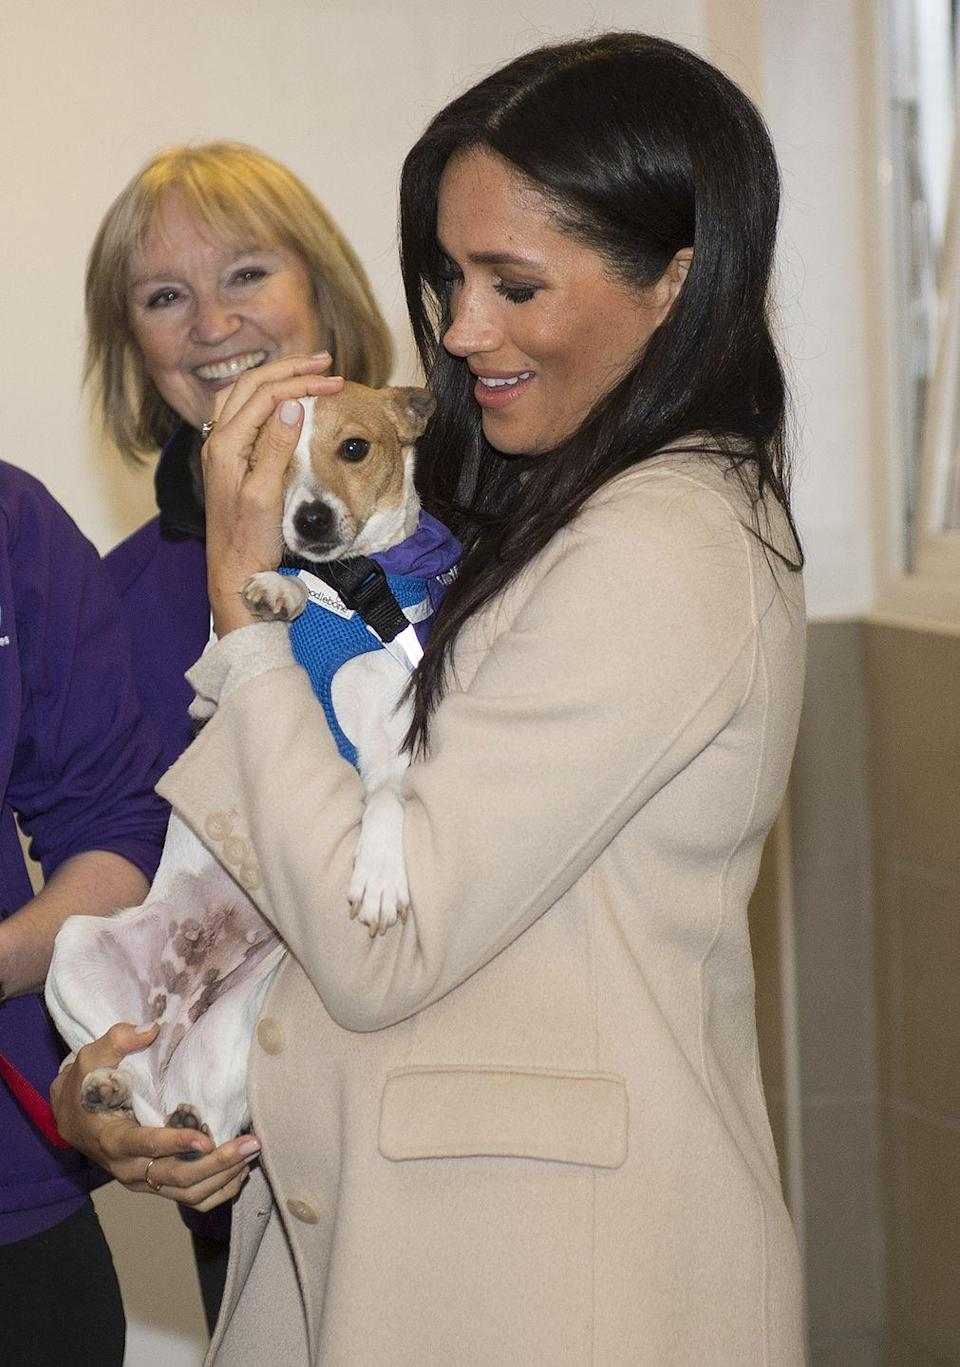 """<p>Meghan Markle meets a Jack Russell named Minnie during her visit to the Mayhew, an animal welfare charity of which <a href=""""https://www.townandcountrymag.com/society/tradition/a25835910/meghan-markle-royal-patronages-charities/"""" rel=""""nofollow noopener"""" target=""""_blank"""" data-ylk=""""slk:she is now patron"""" class=""""link rapid-noclick-resp"""">she is now patron</a>.</p>"""